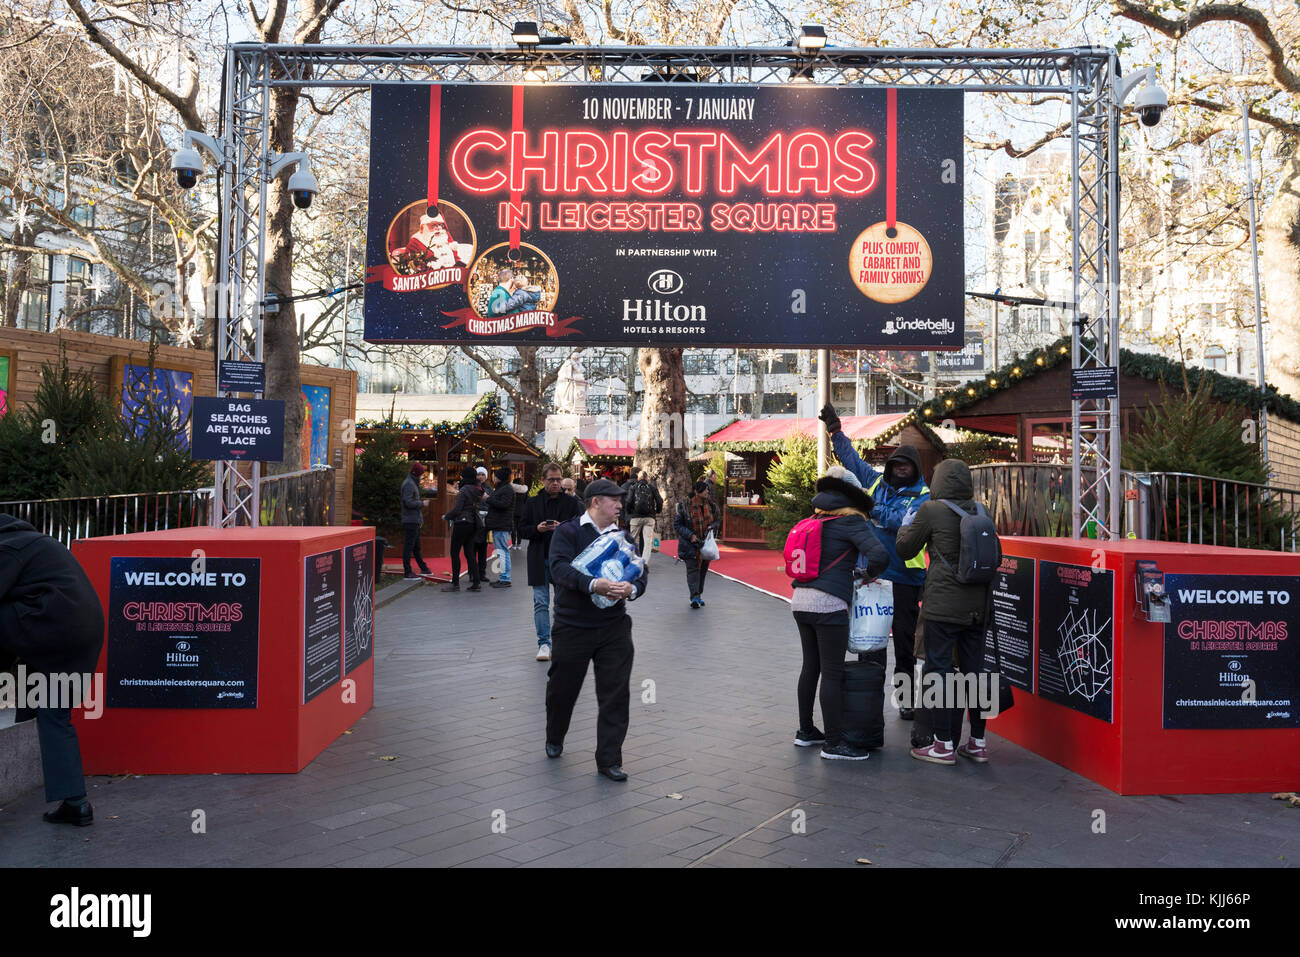 Leicester Square Christmas market, London - Stock Image